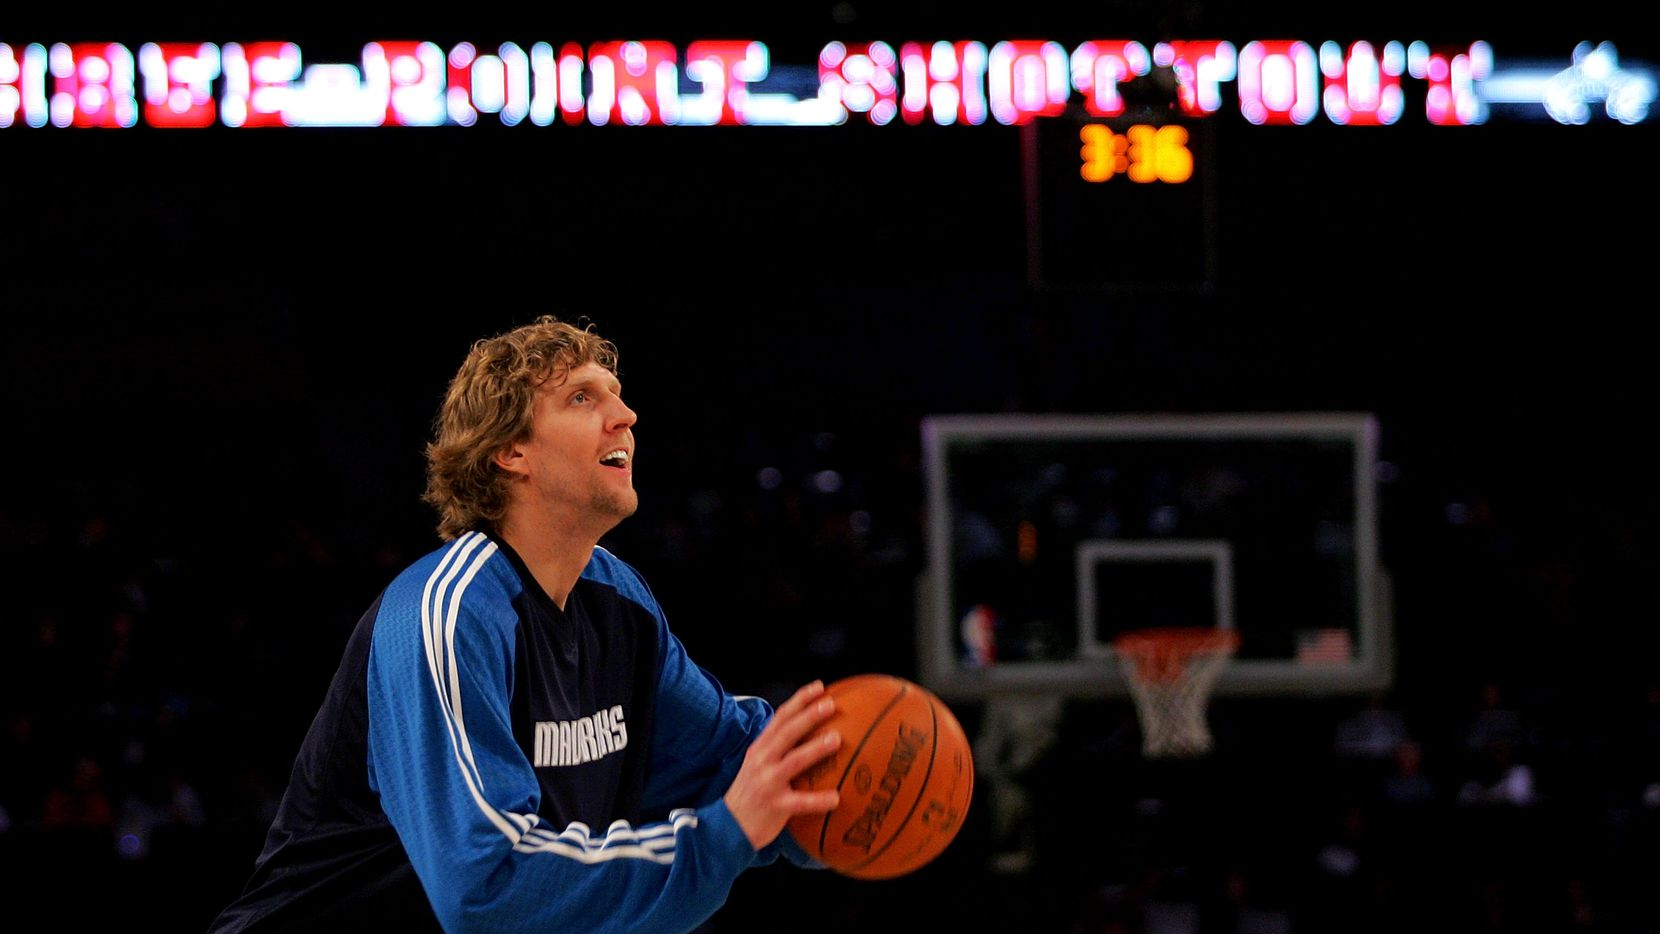 NEW ORLEANS - FEBRUARY 16: Dirk Nowitzki of the Dallas Mavericks warms up for the Foot Locker Three-Point Shootout, part of 2008 NBA All-Star Weekend at the New Orleans Arena on February 16, 2008 in New Orleans, Louisiana. NOTE TO USER: User expressly acknowledges and agrees that, by downloading and or using this photograph, User is consenting to the terms and conditions of the Getty Images License Agreement. (Photo by Ronald Martinez/Getty Images)